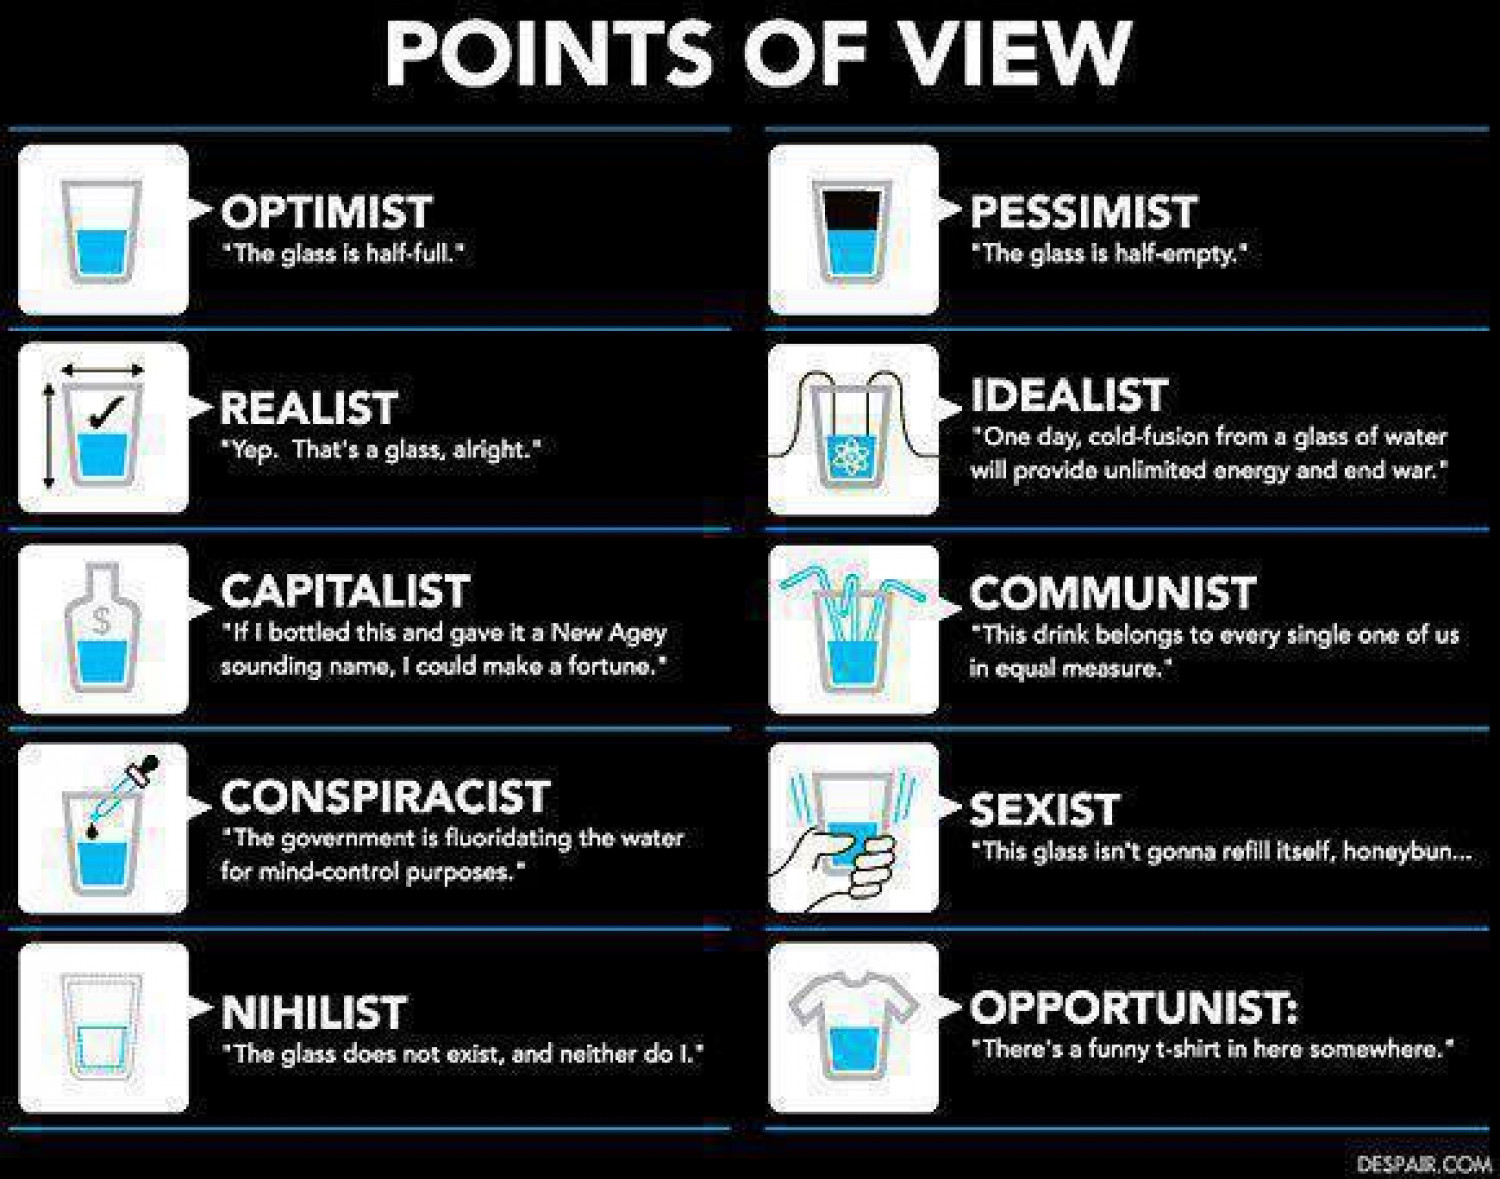 Points of View Infographic